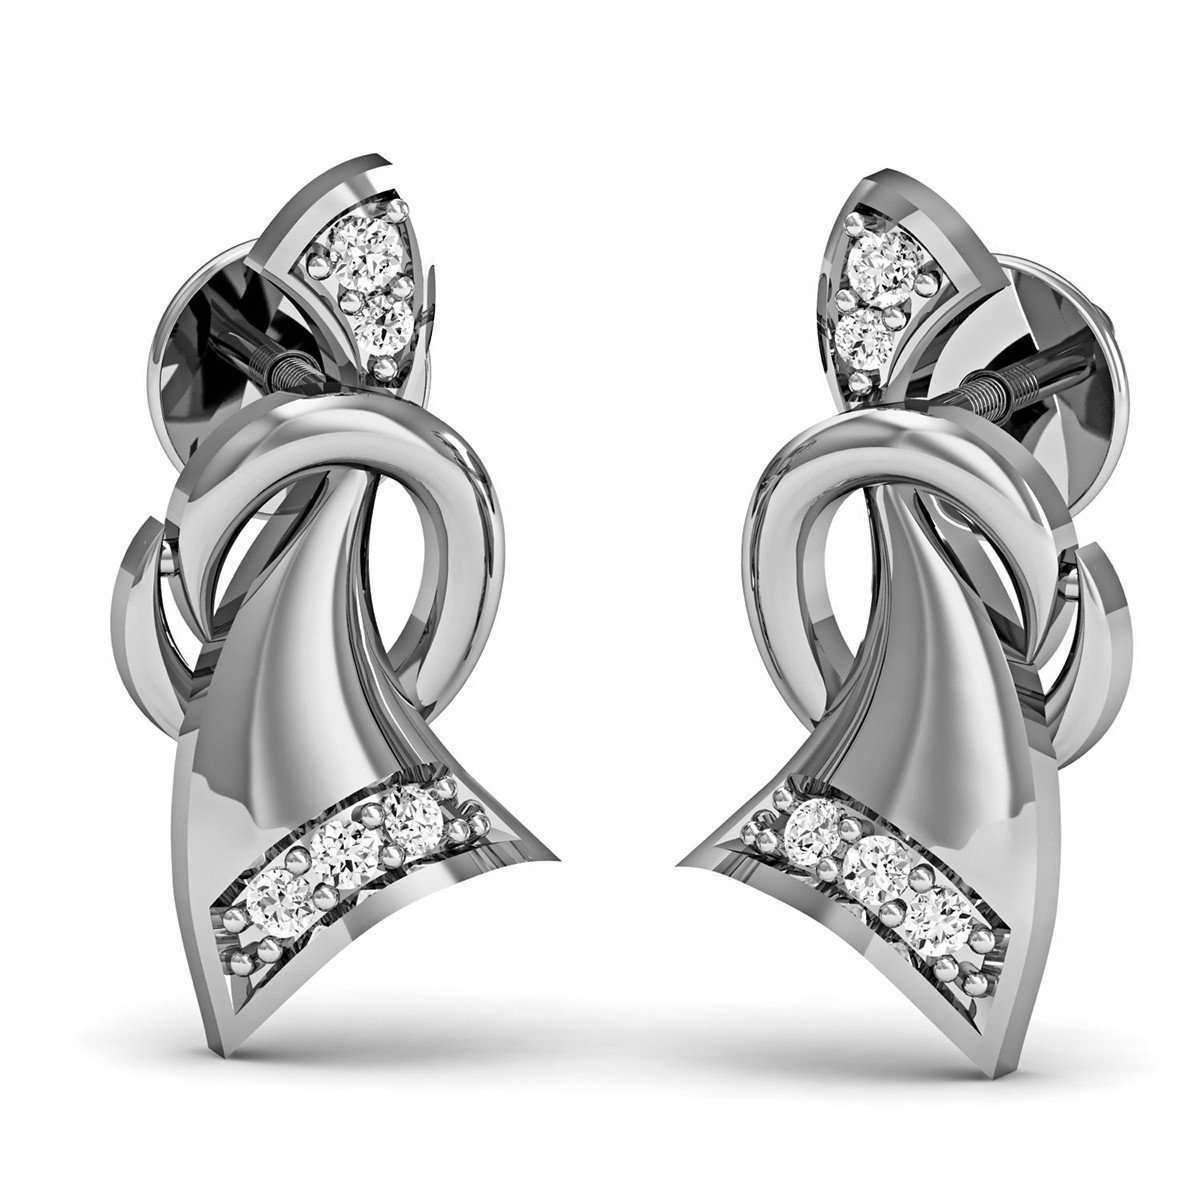 Diamoire Jewels Hand-carved Earrings in 10kt White Gold with Round Cut Diamonds eQAo5Gq3